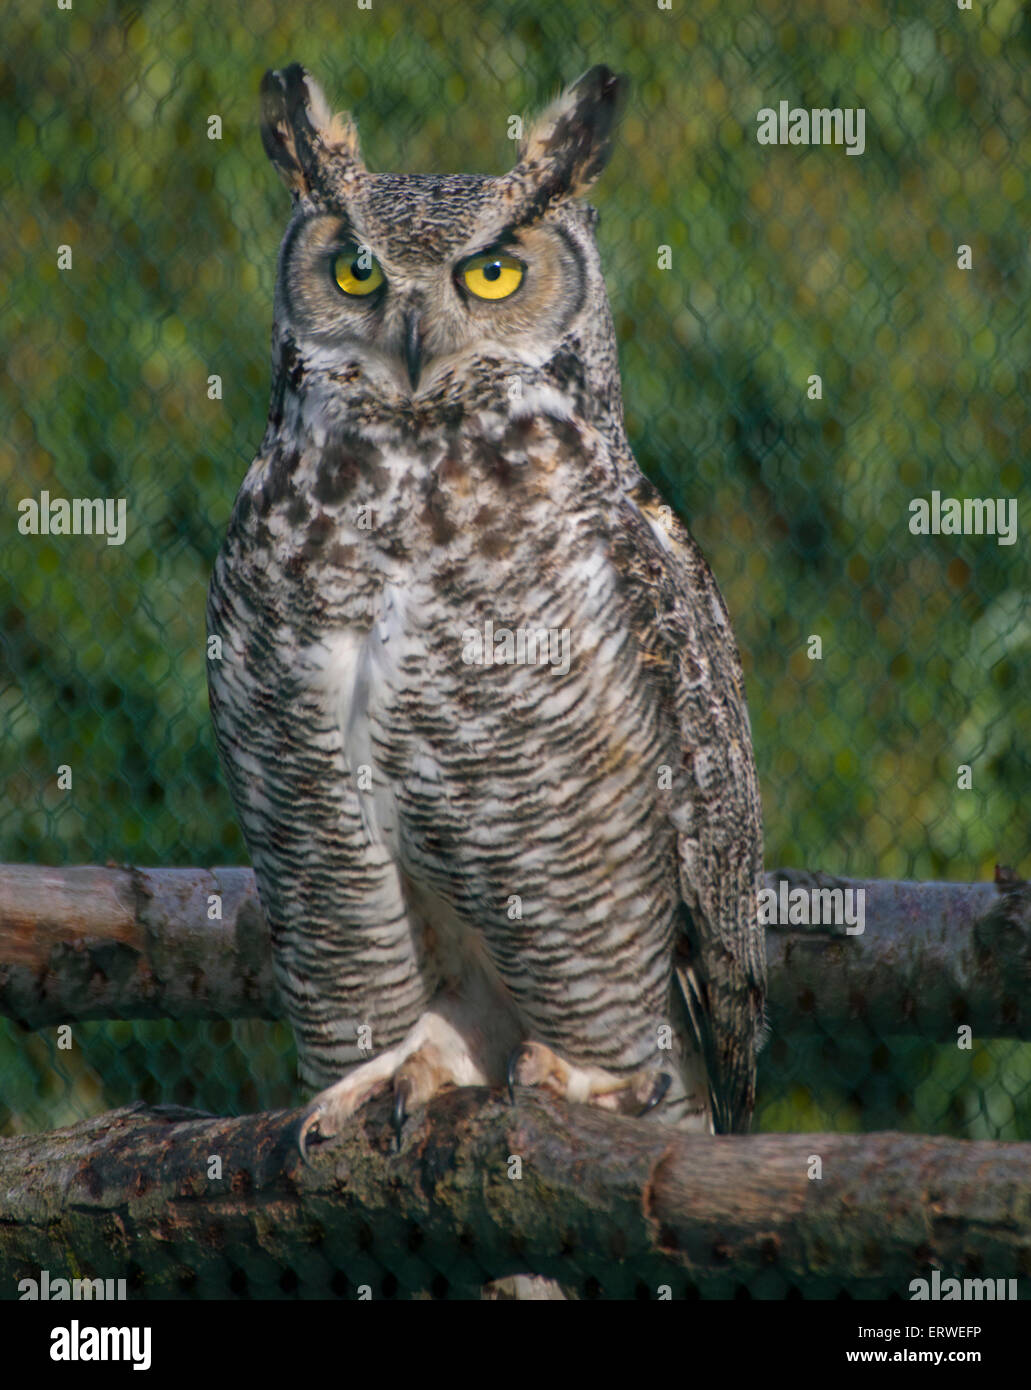 eagle owl with large ears and piercing green eye with sharp claws on log in cage - Stock Image